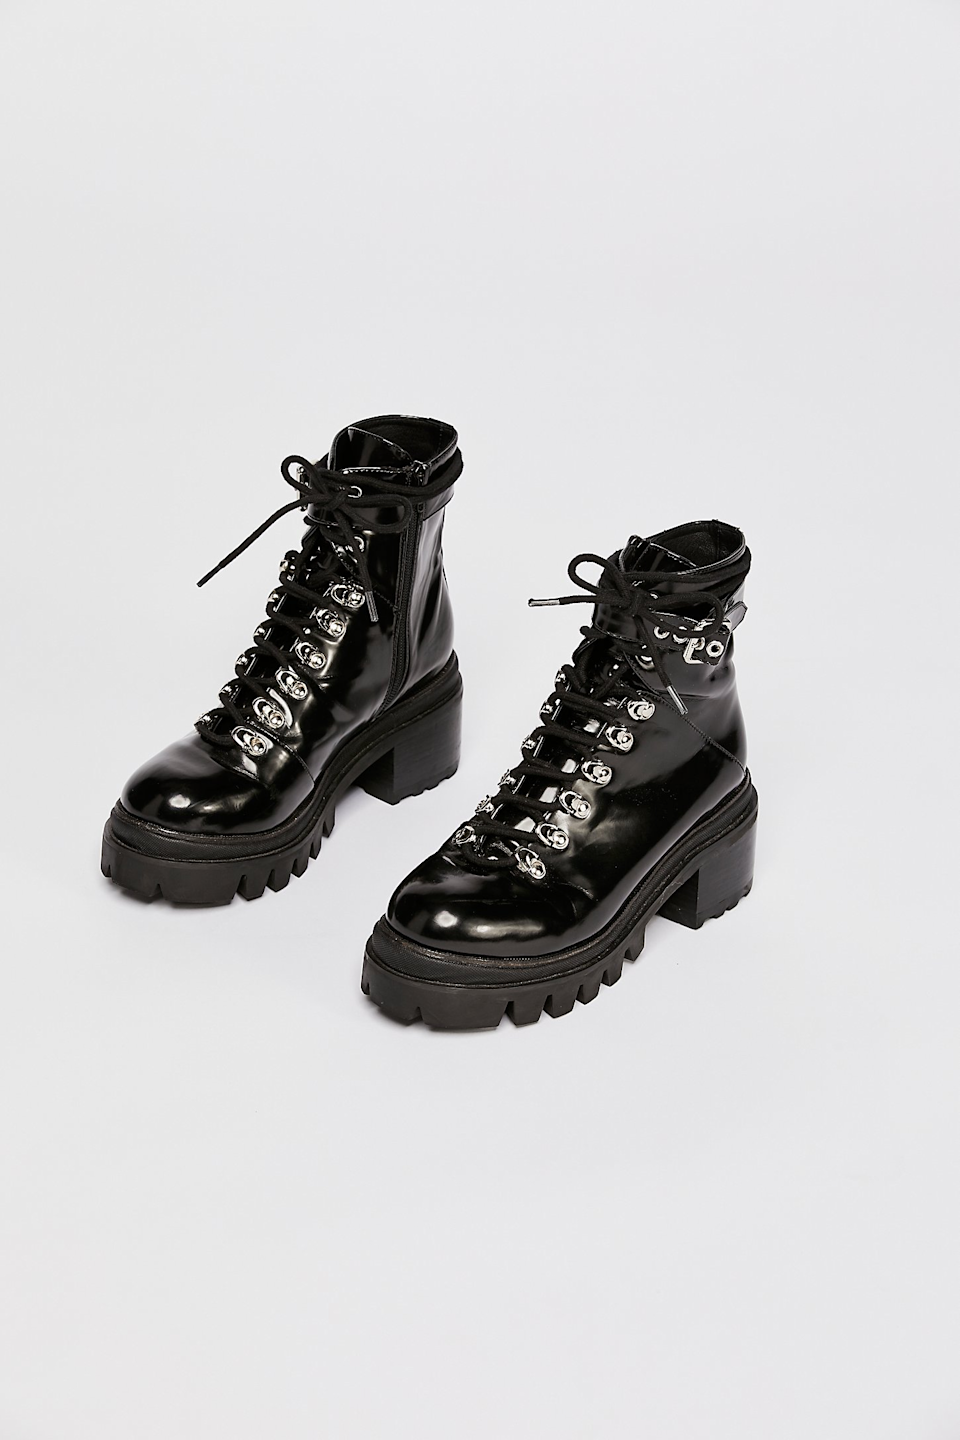 "<br><br><strong>Jeffrey Campbell</strong> Check Lace-Up Boot, $, available at <a href=""https://go.skimresources.com/?id=30283X879131&url=https%3A%2F%2Fwww.freepeople.com%2Fshop%2Fcheck-lace-up-boot%2F%3Fcategory%3Dboots%26color%3D001%26quantity%3D1%26type%3DREGULAR"" rel=""nofollow noopener"" target=""_blank"" data-ylk=""slk:Free People"" class=""link rapid-noclick-resp"">Free People</a><span class=""copyright"">Photo Courtesy of Free People.</span>"